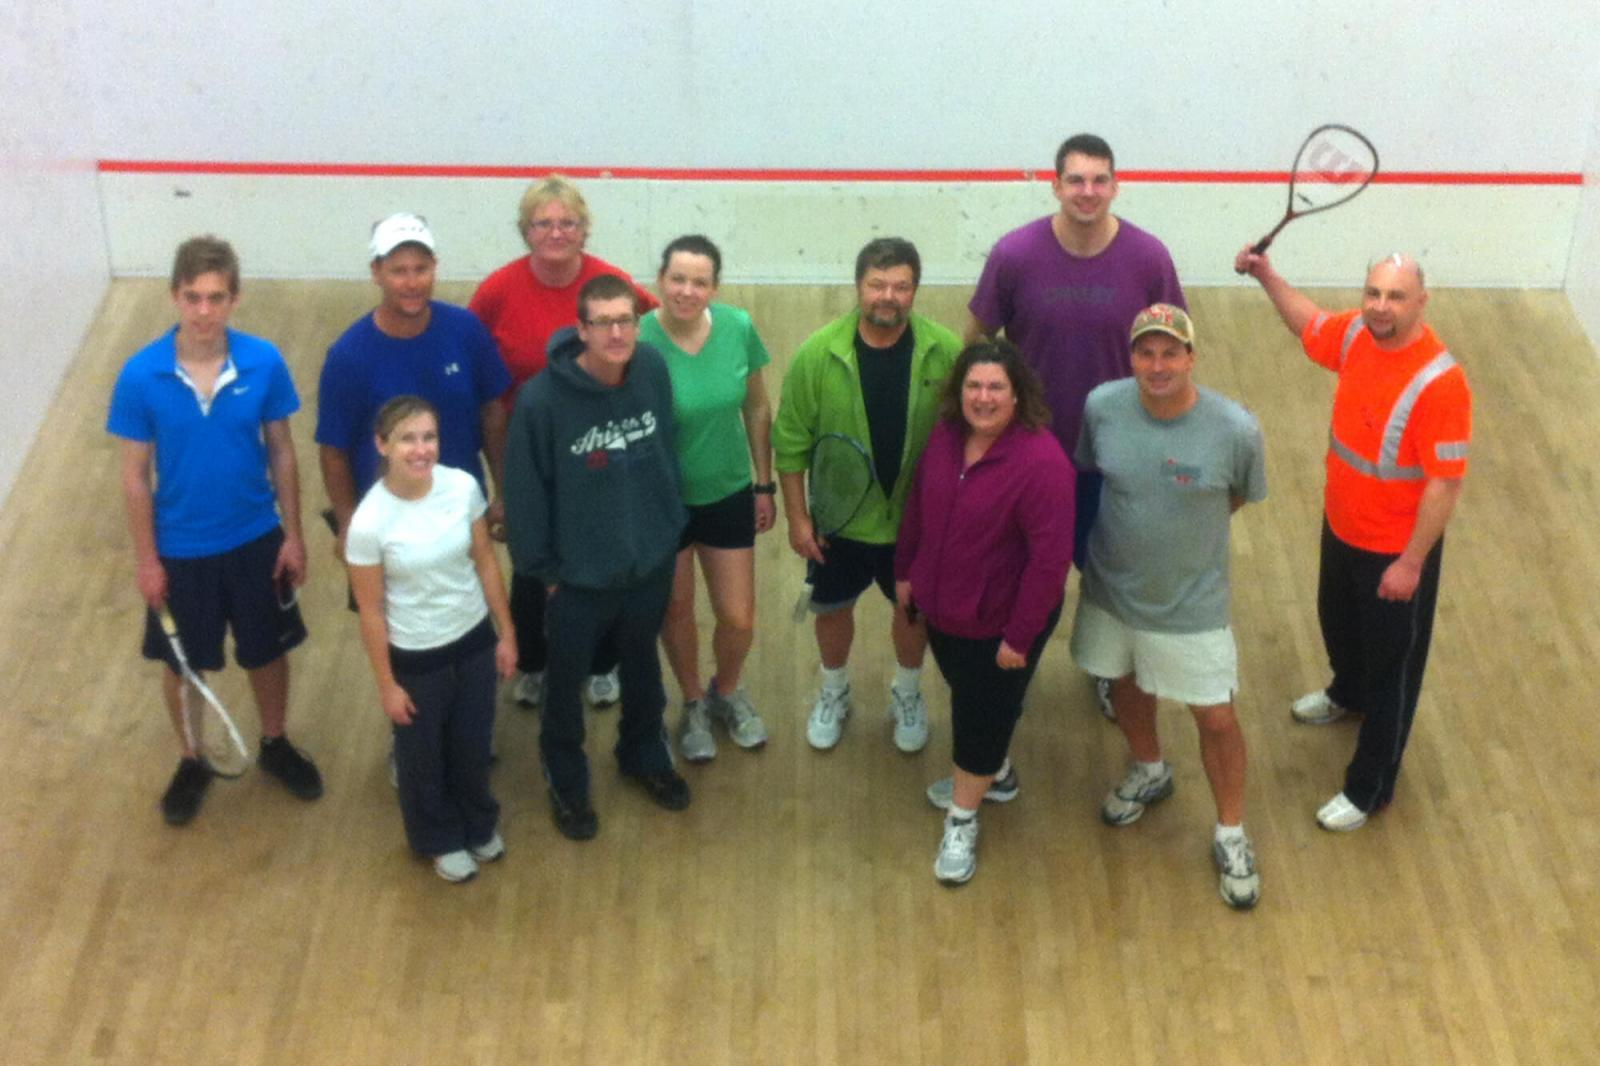 Upper Canada Chapter's Second Annual Squash Tournament